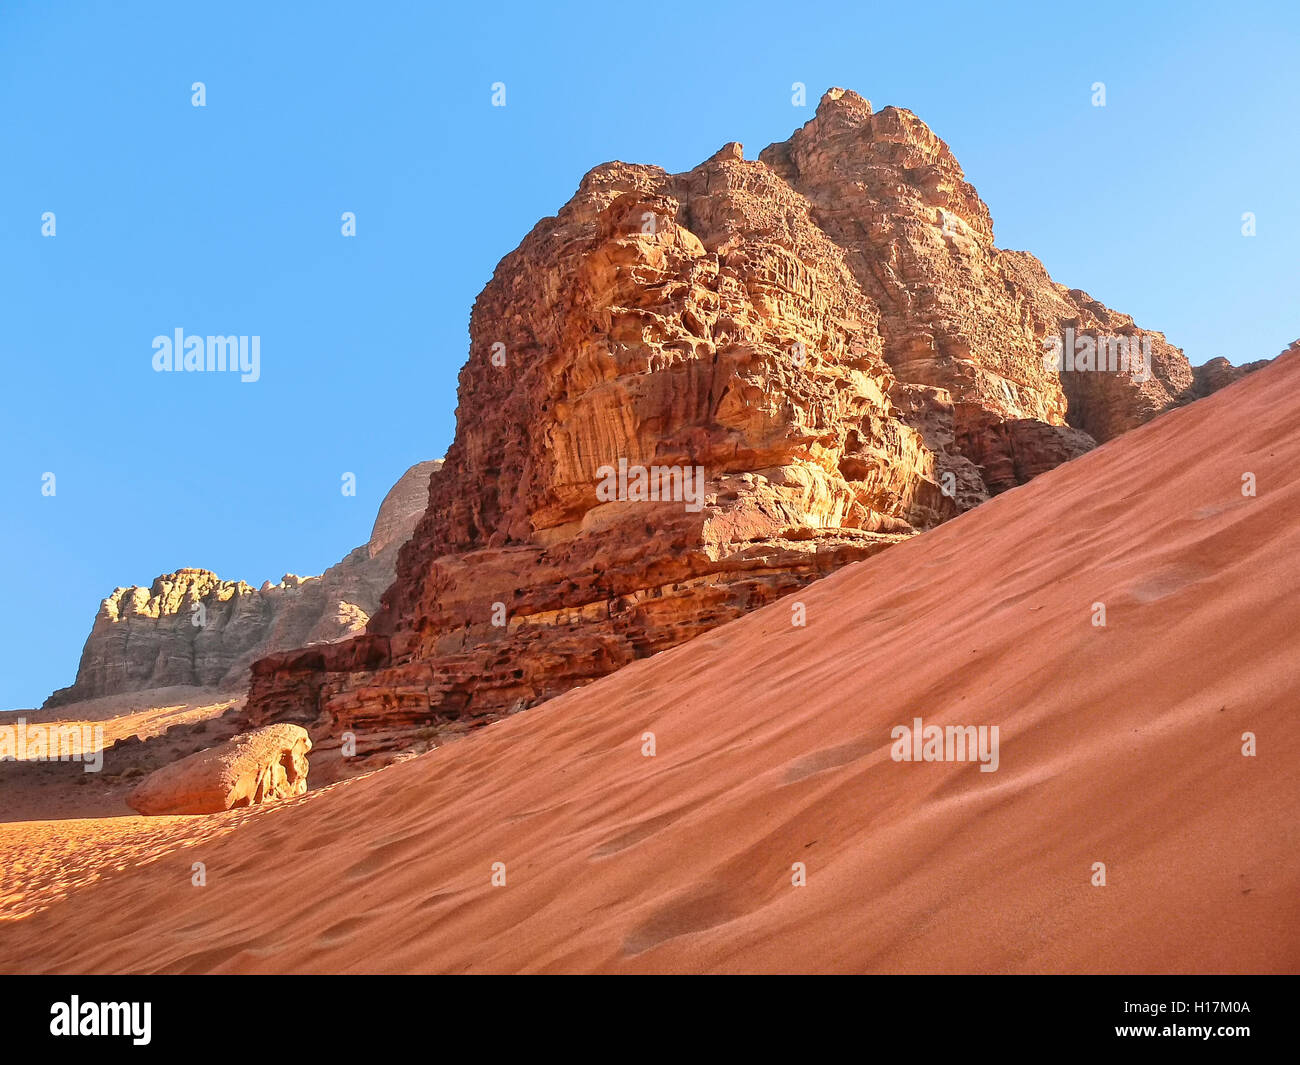 Red Dune in the Desert of Wadi Rum, Jordan - Stock Image